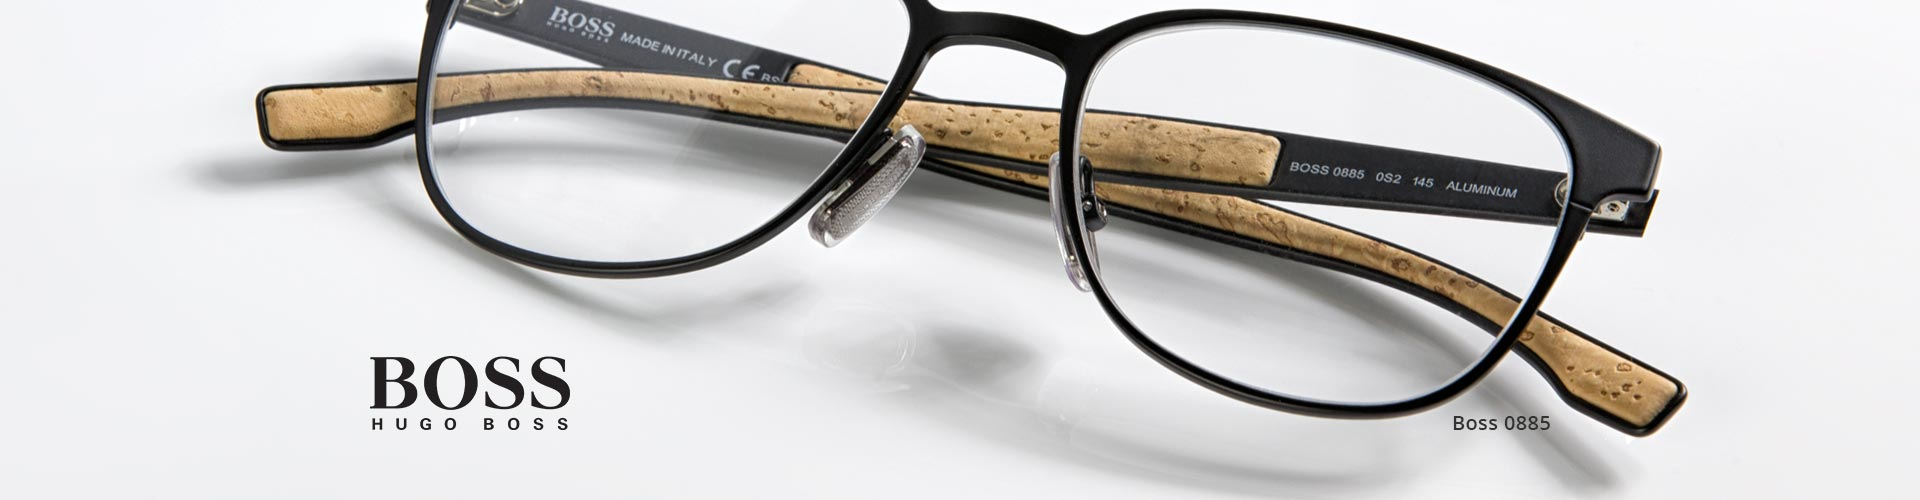 Hugo Boss Black Eyeglasses